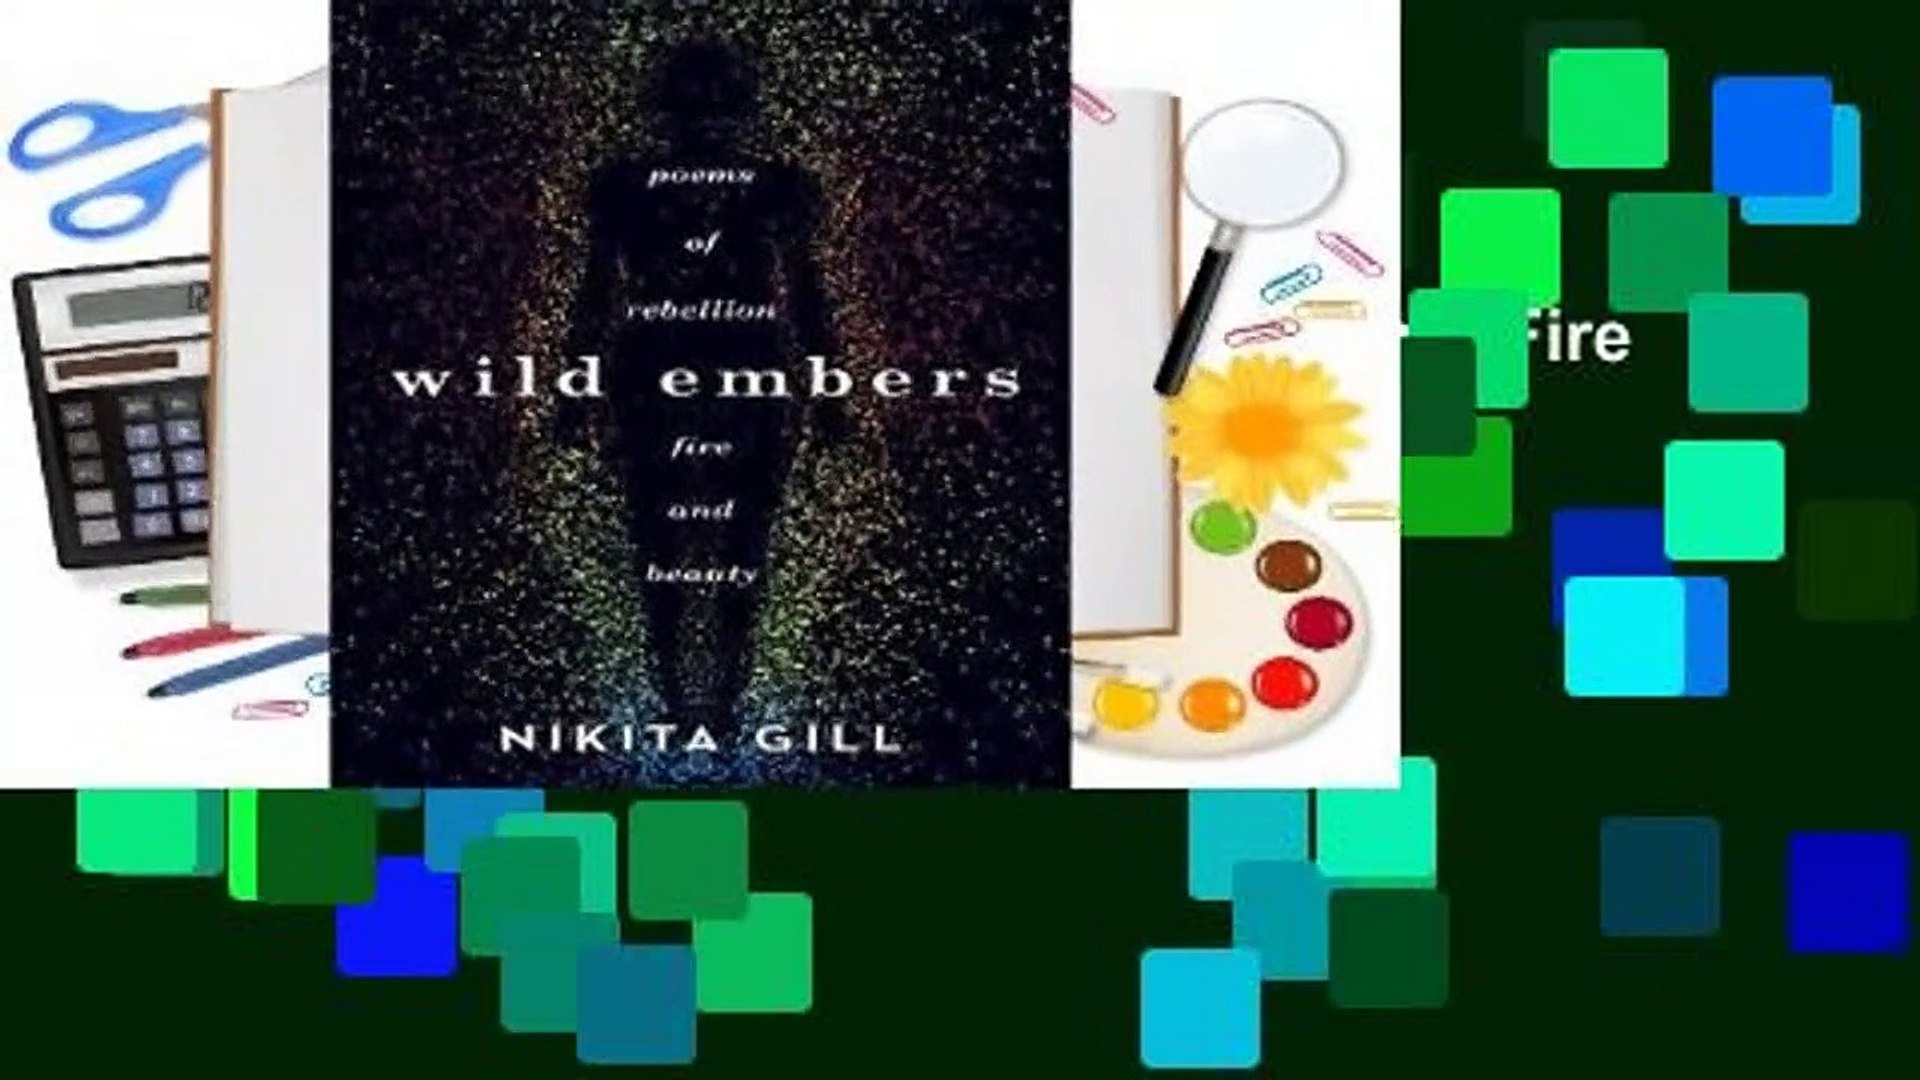 Online Wild Embers: Poems of Rebellion, Fire and Beauty  For Trial